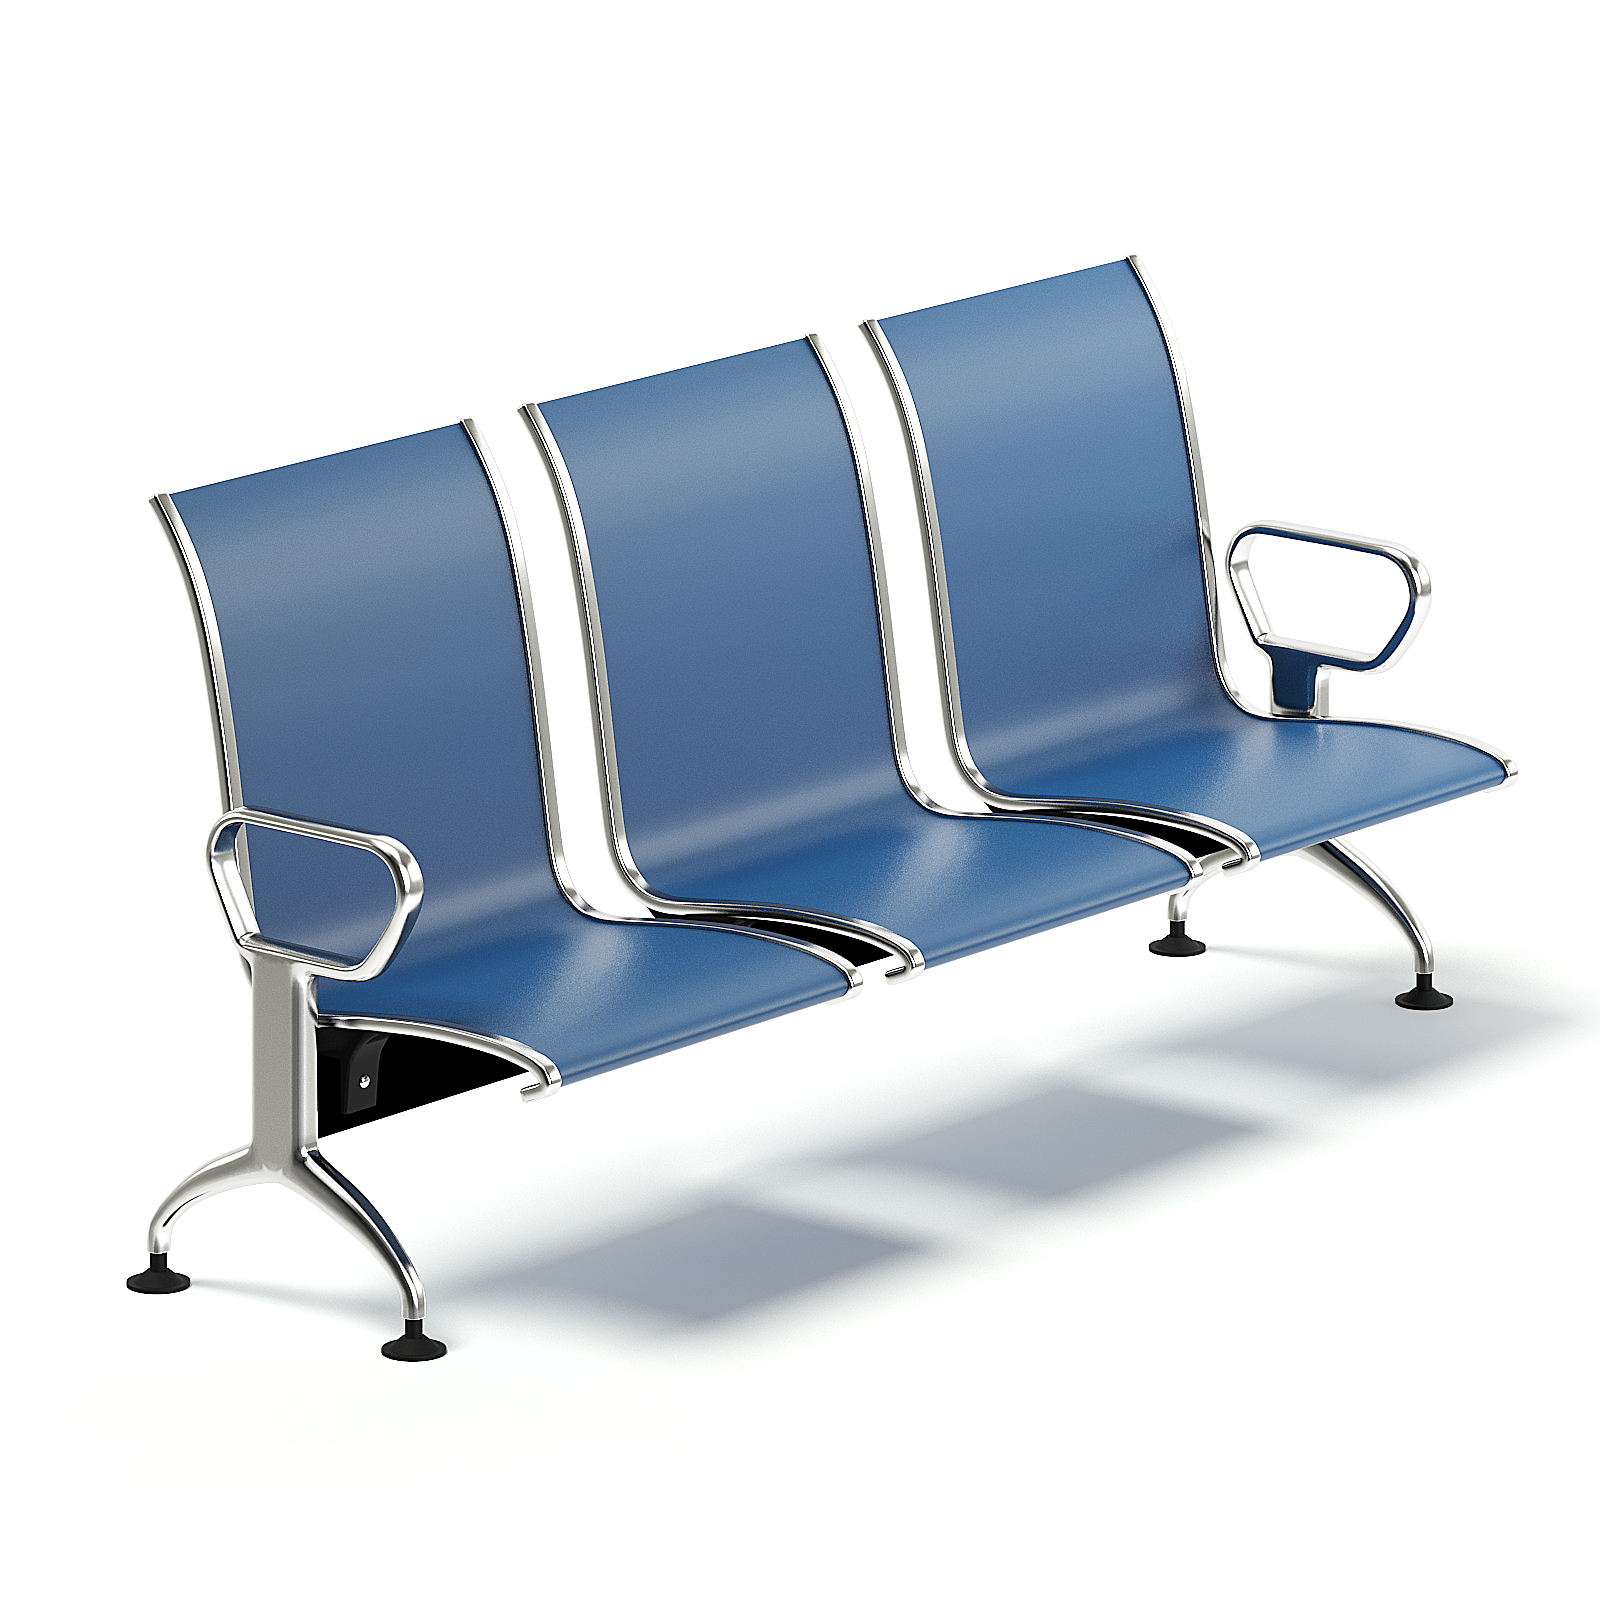 Blue Waiting Chairs 6D Model